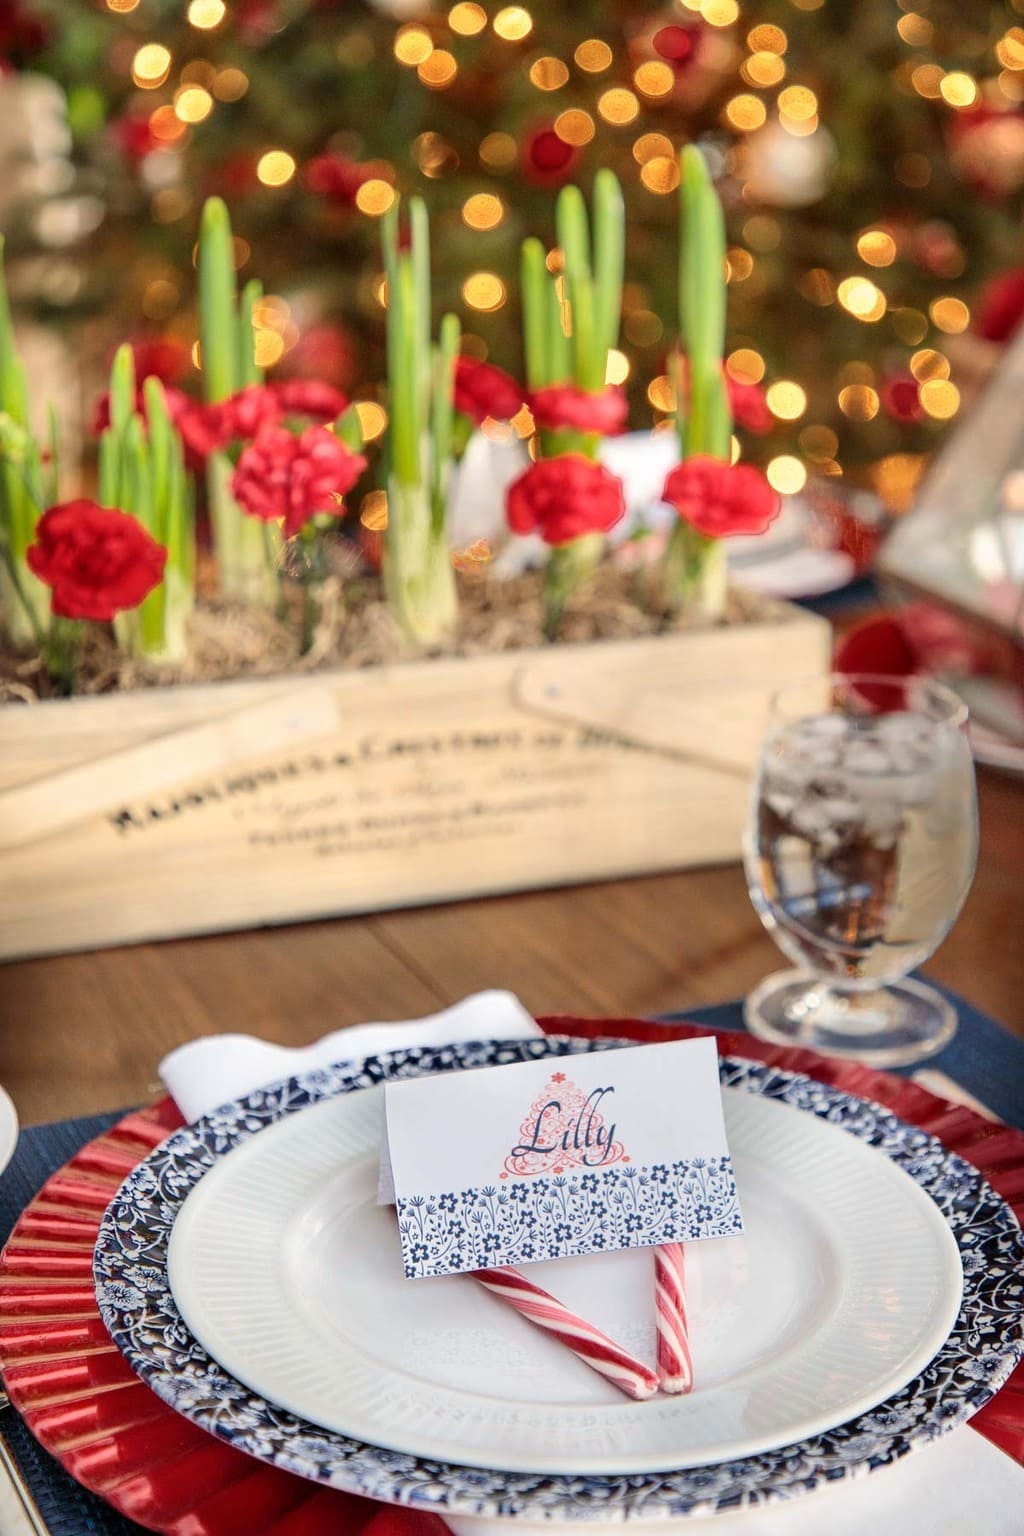 Photo of a place setting, festive place cards and Christmas flower suggestions. Holiday Table Inspiration Ideas from The Café Sucre Farine.com.